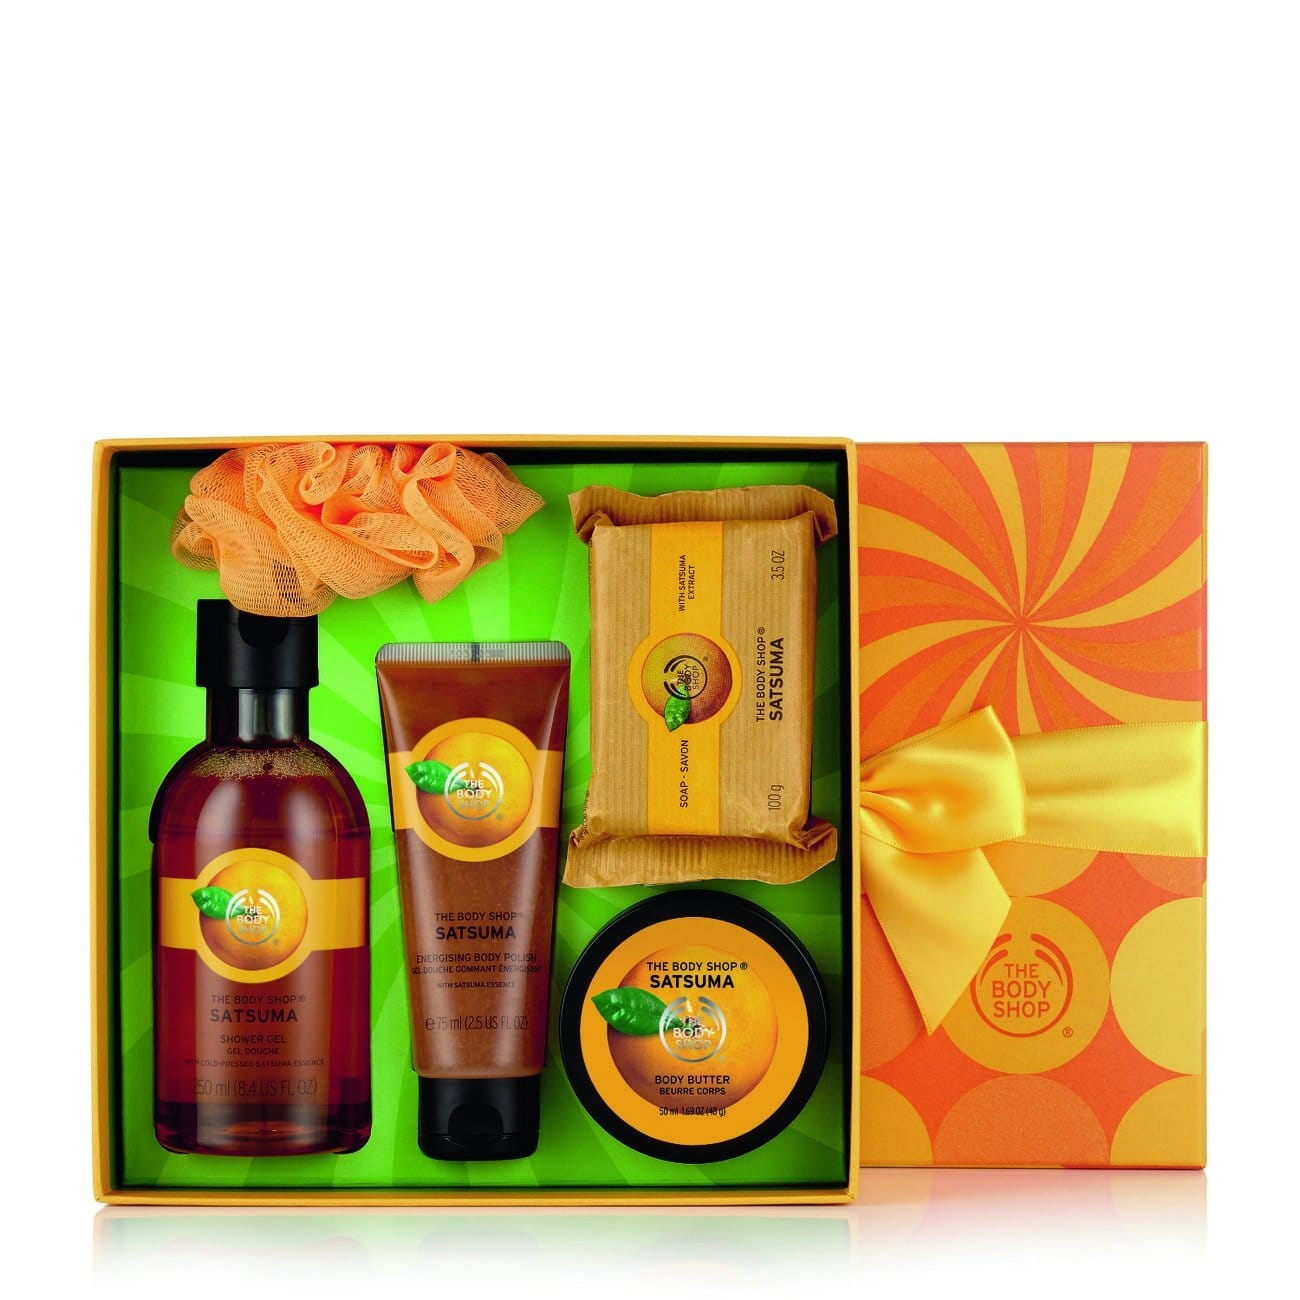 Add-on items:The Body Shop Satsuma Festive Picks Small Gift Set $4.45 & More Sale Gift Sets